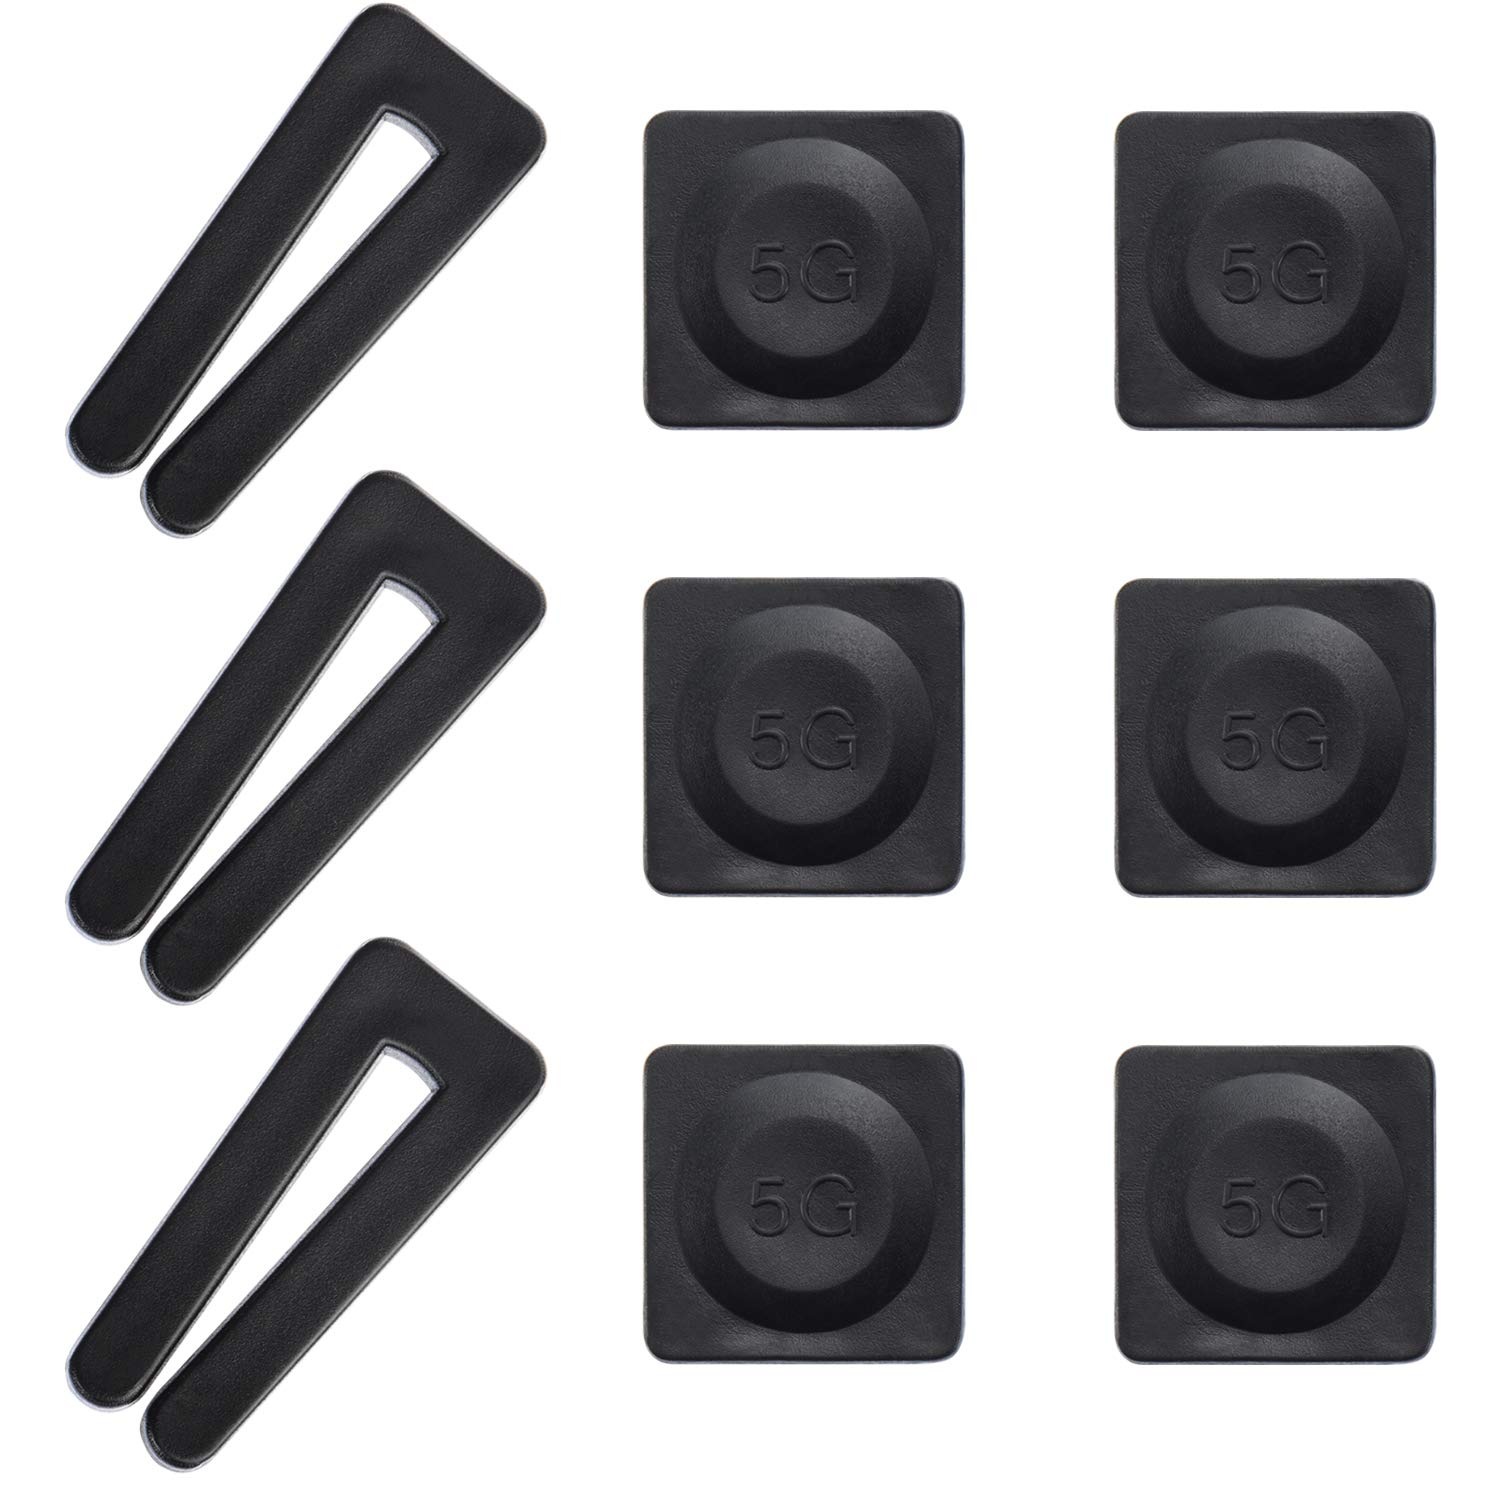 Canomo 3 Set Ceiling Fan Blade Balancing Kit Include 3 Pieces Plastic Balancing Clips and 6 Pieces Self-adhesive 5G Balancing Weights